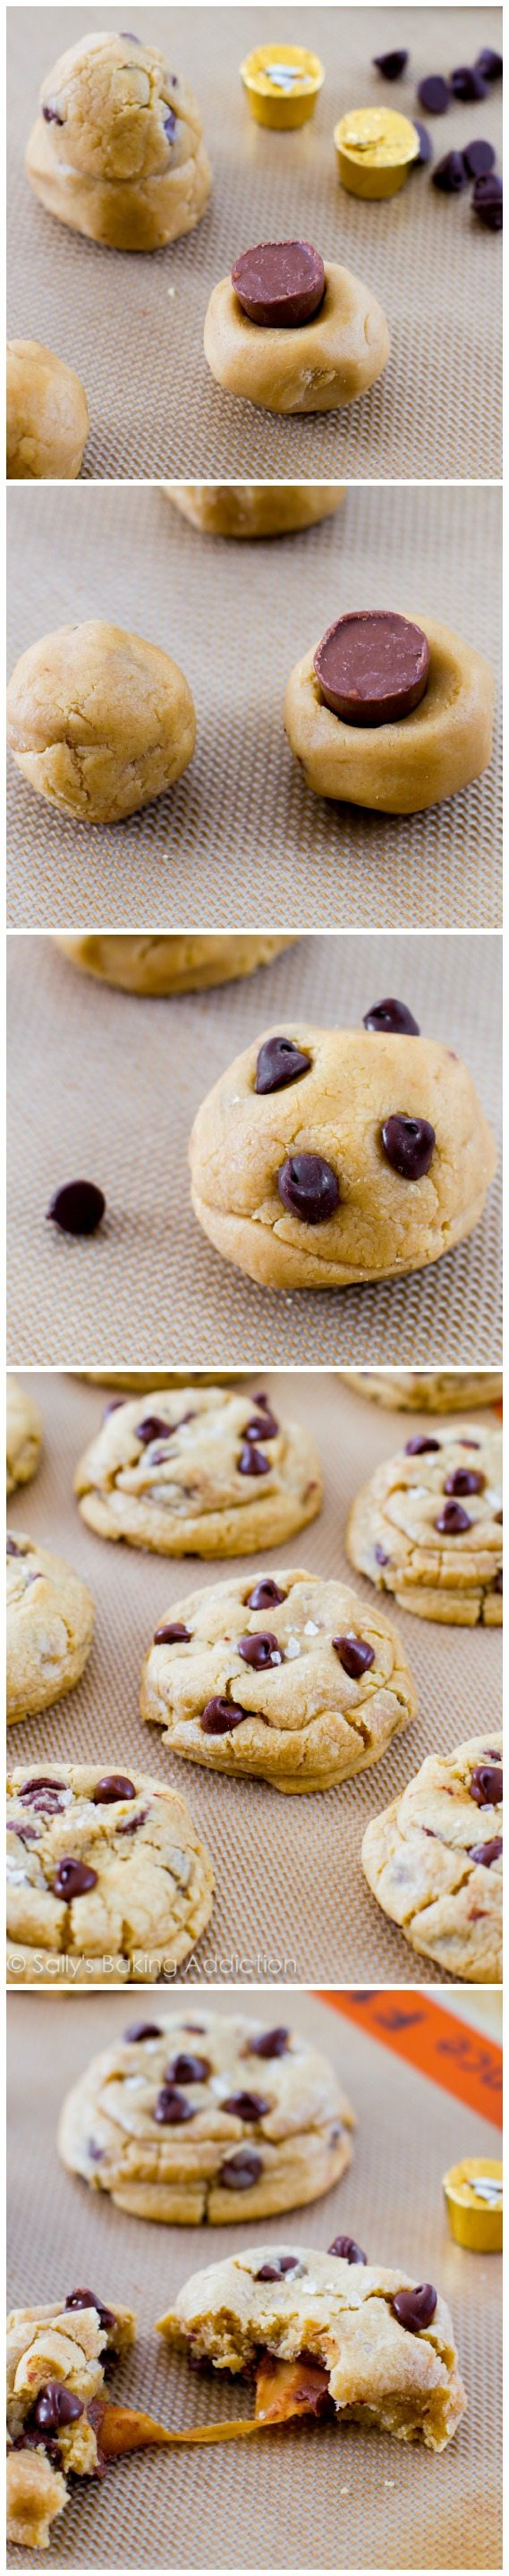 How to make Salted Caramel Chocolate Chip Cookies! These are unbelievable and disappear every time I make them!